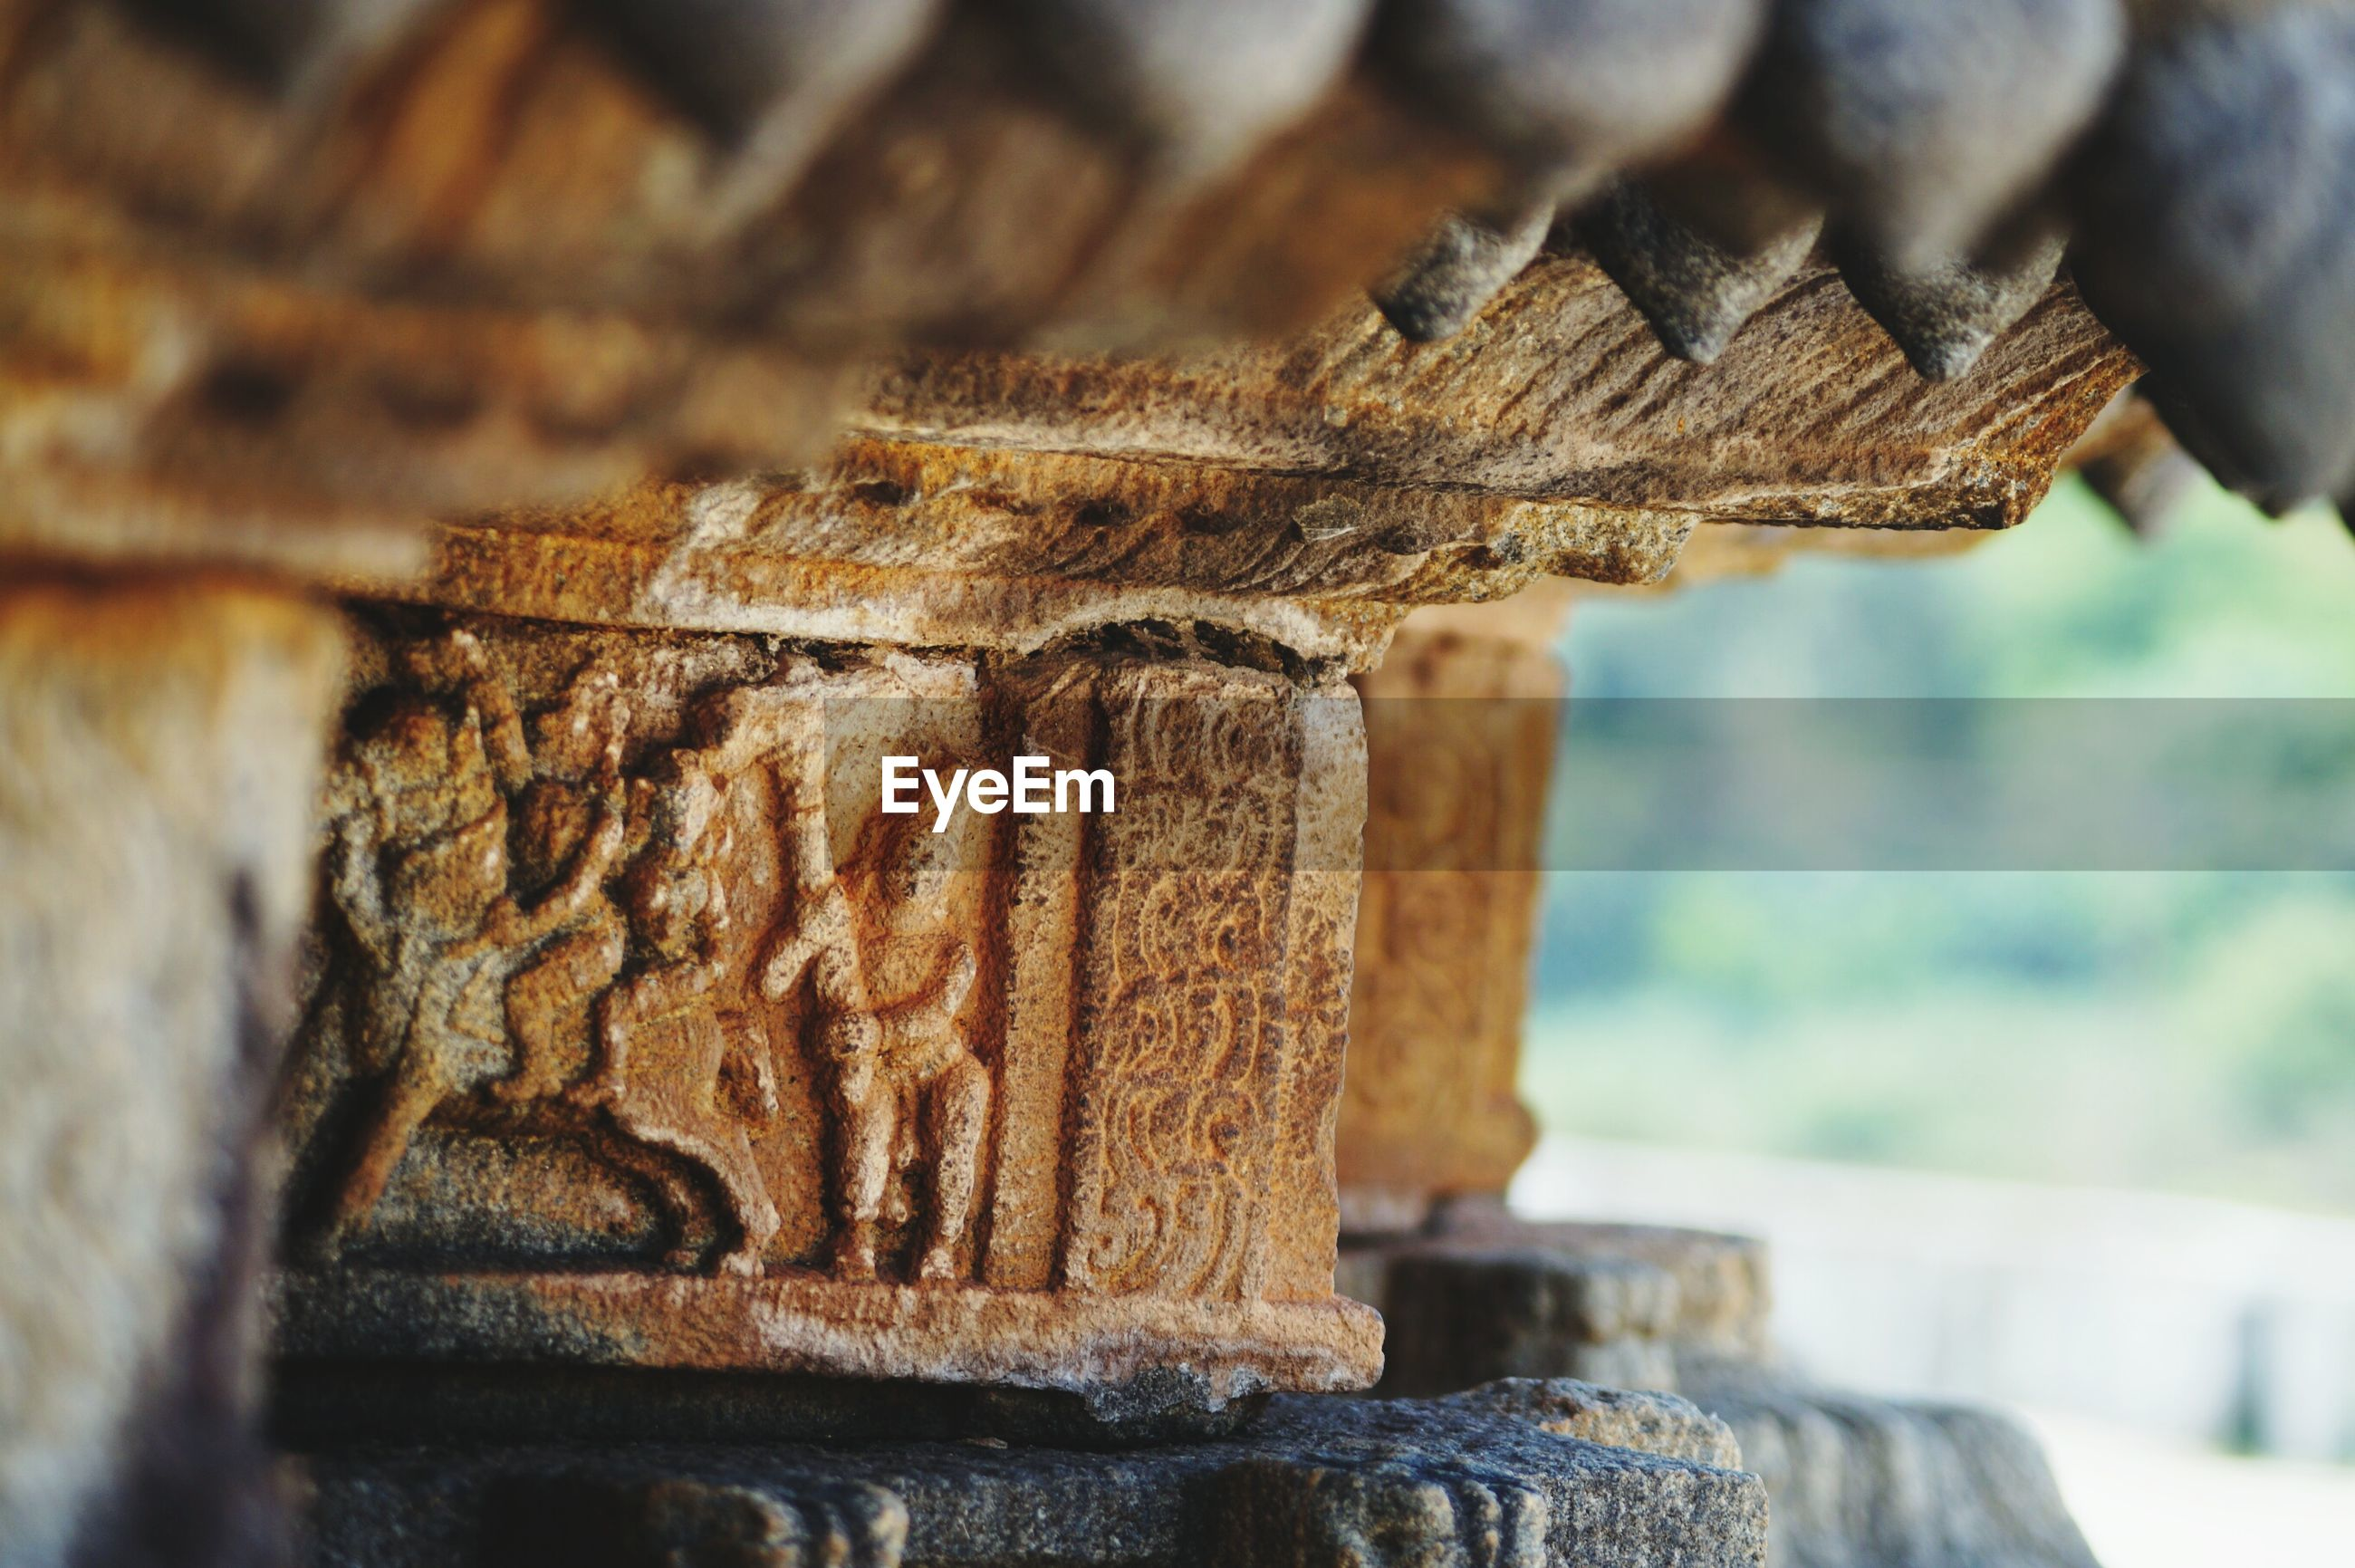 focus on foreground, close-up, selective focus, wood - material, old, day, animal themes, art and craft, weathered, outdoors, wall - building feature, art, built structure, no people, animals in the wild, stone material, rusty, architecture, one animal, religion